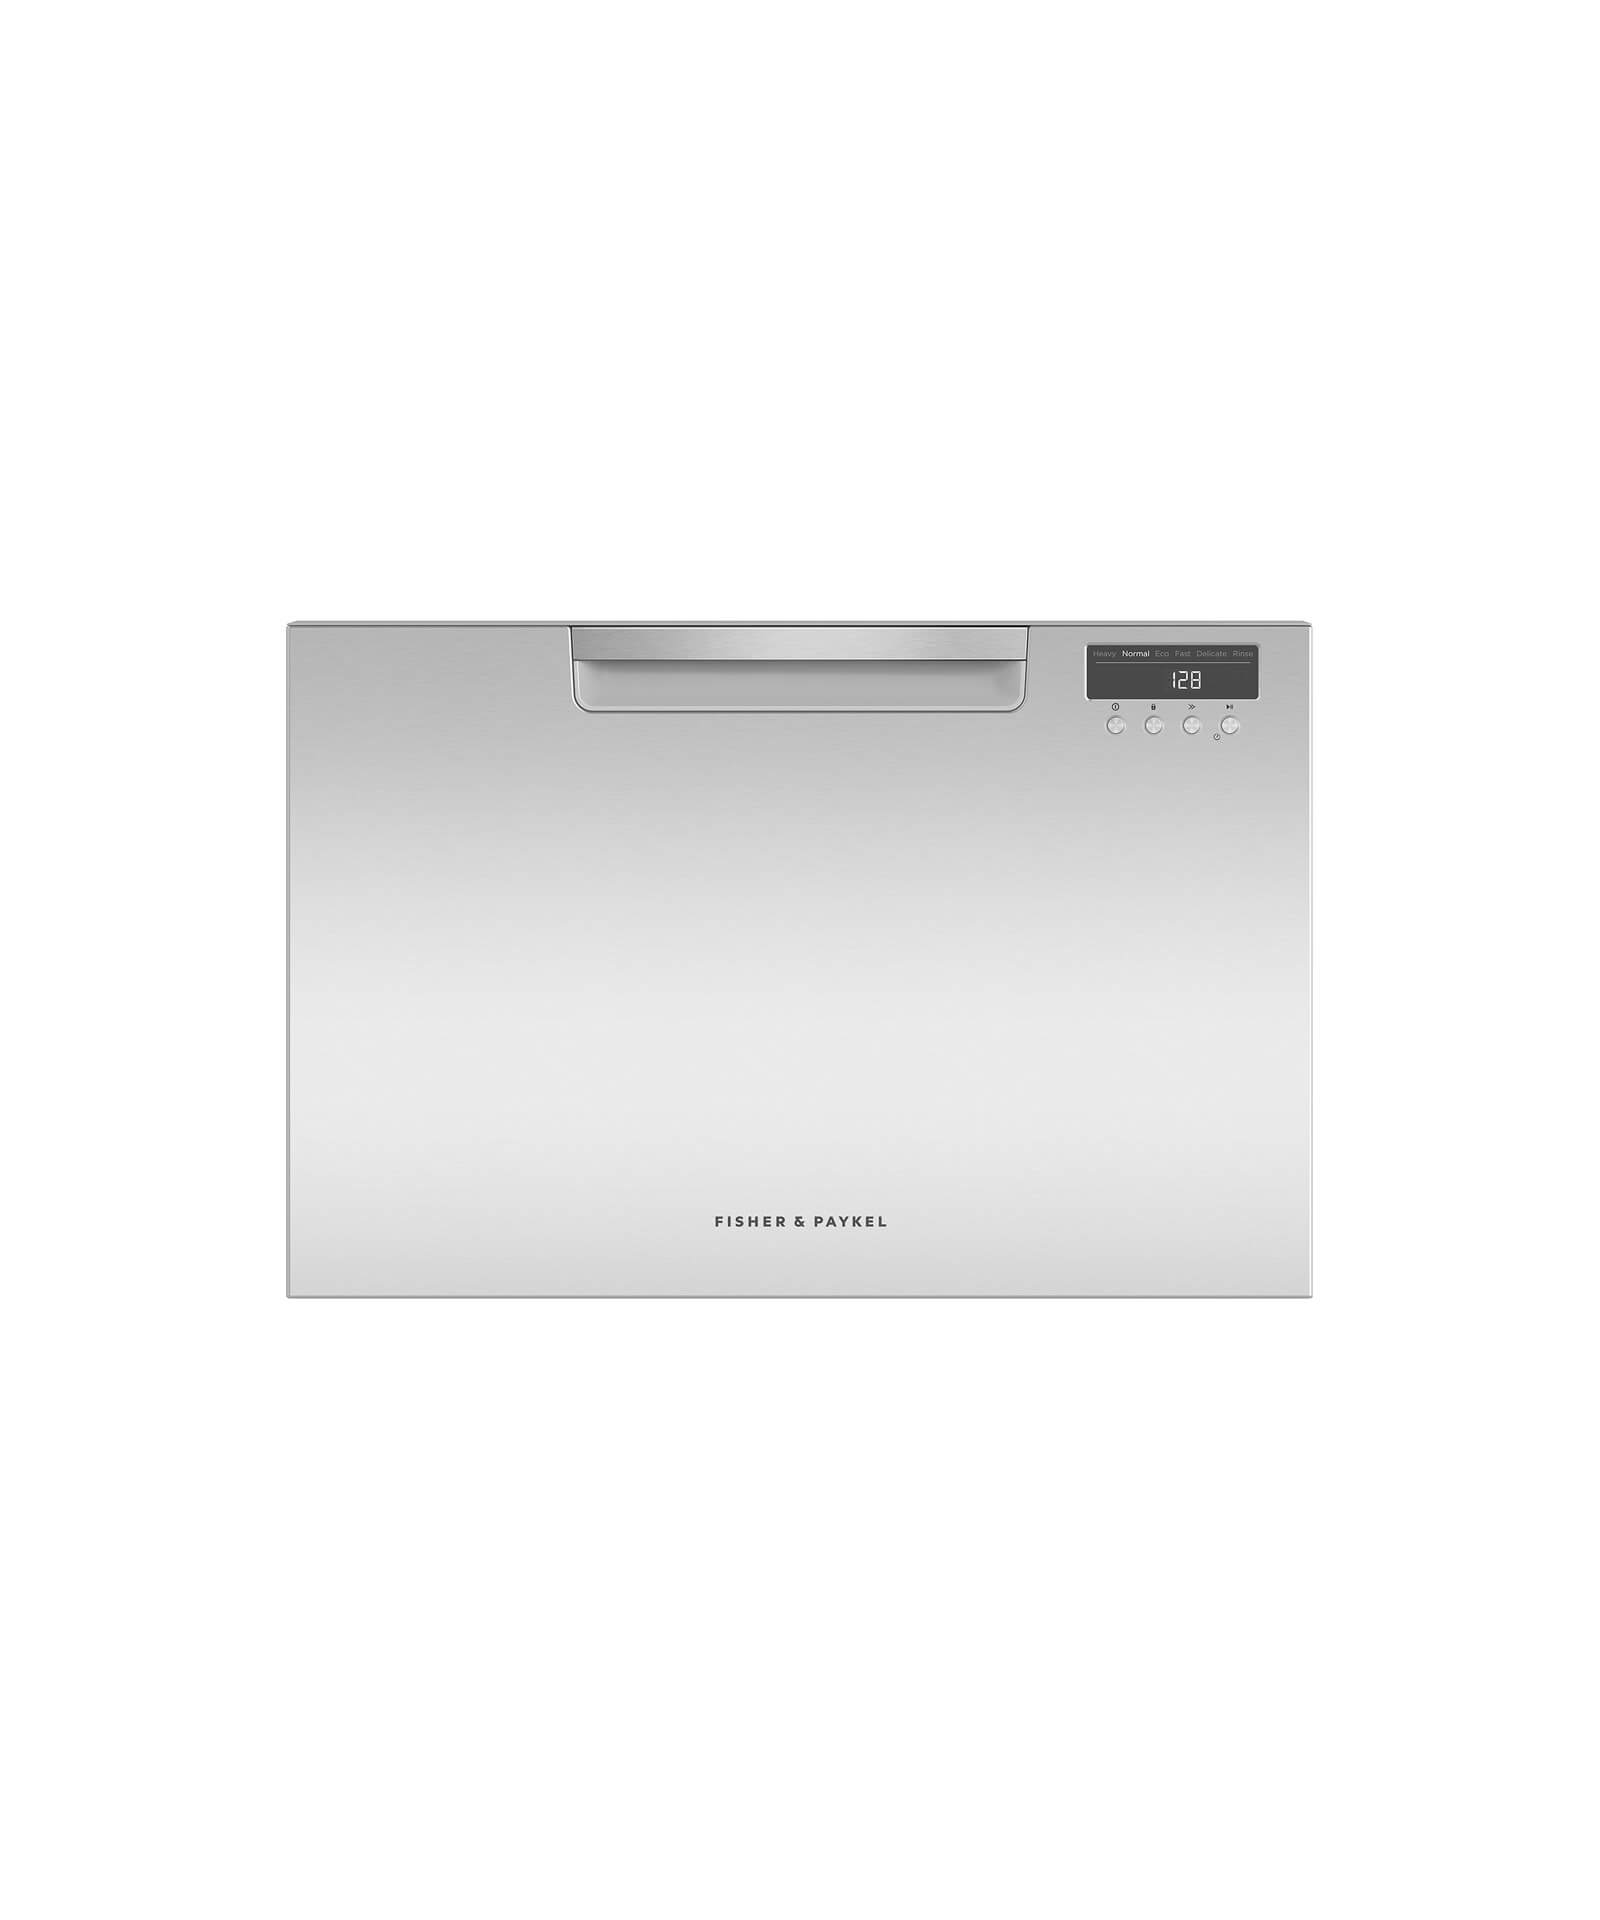 Fisher and Paykel DISPLAY MODEL--Single DishDrawer Dishwasher, 7 Place Settings